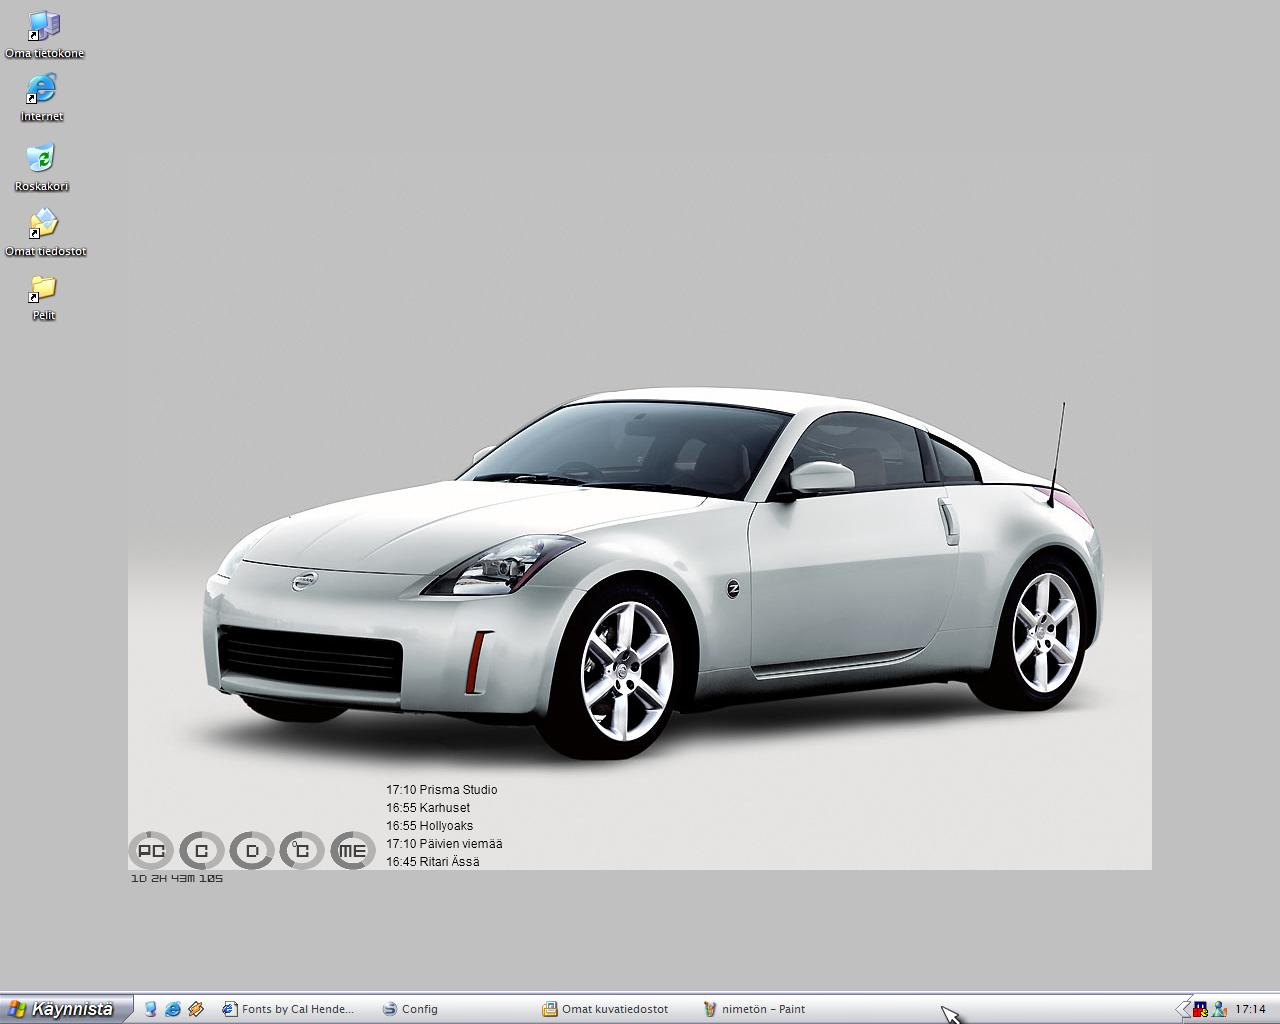 Title: Favourite Car 350Z